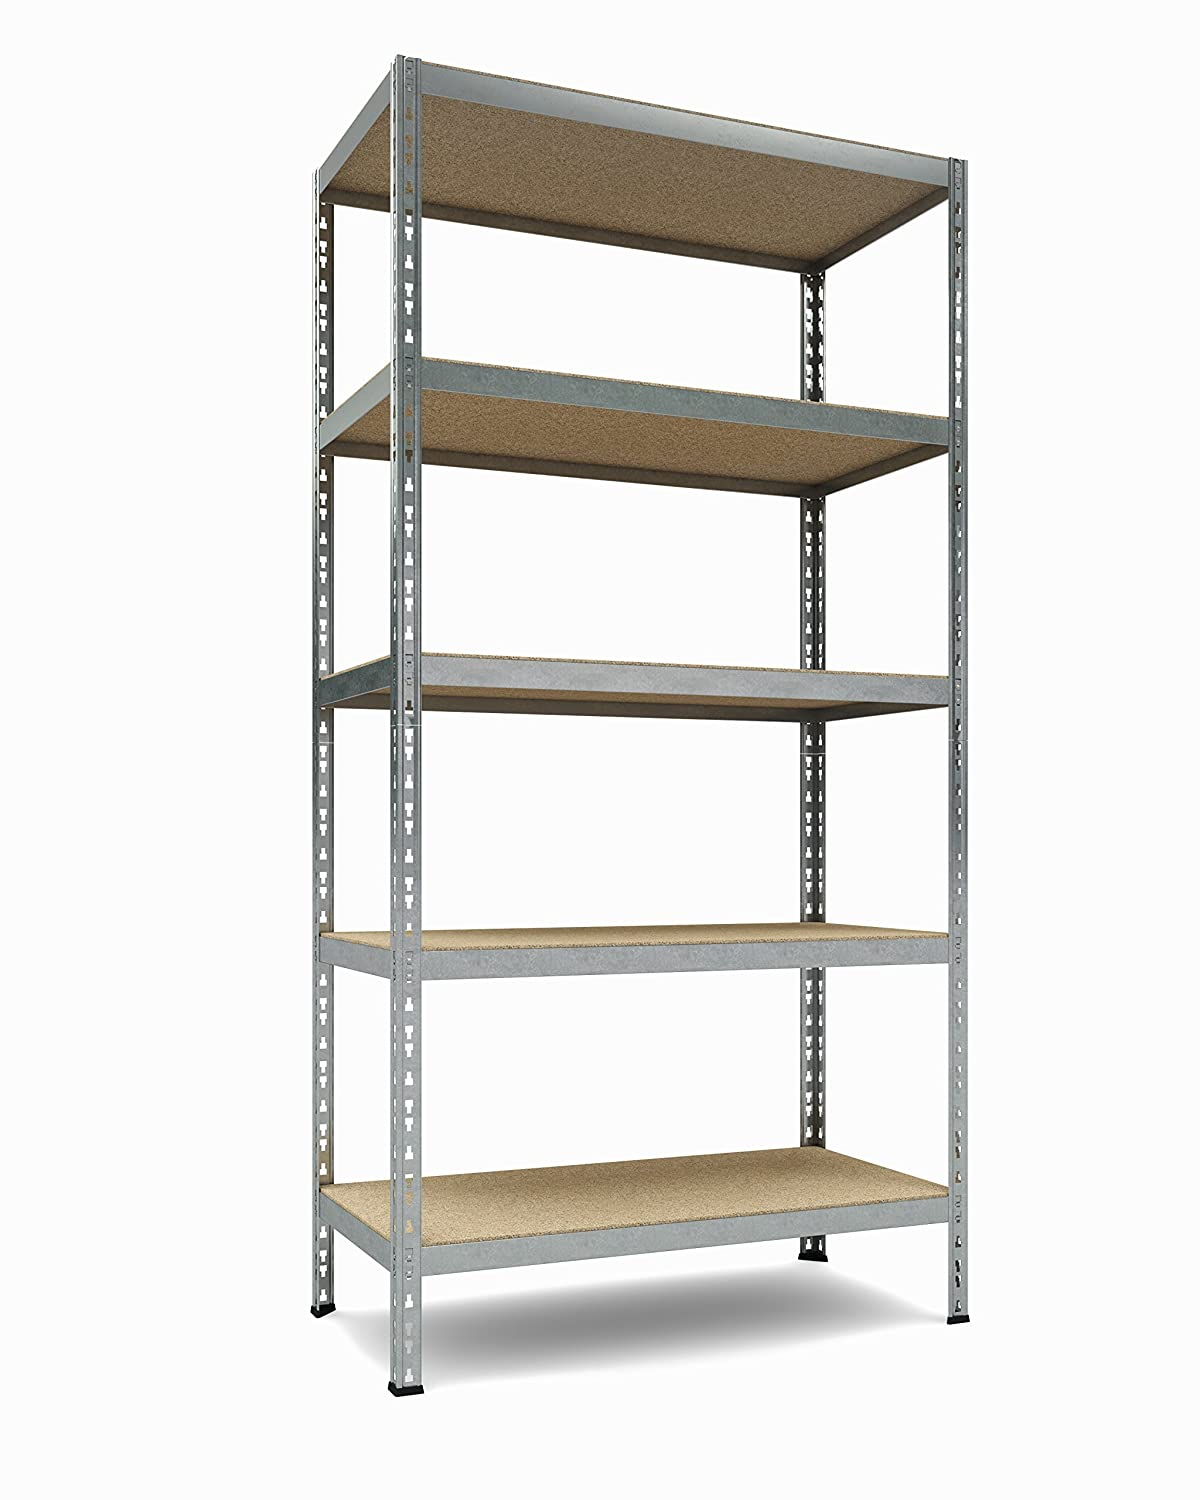 "TKT Heavy Duty Shelving 5-Shelf Shelving Unit, 1.925lbs Capacity, 36"" Width x 72"" Height x 18"" Depth"